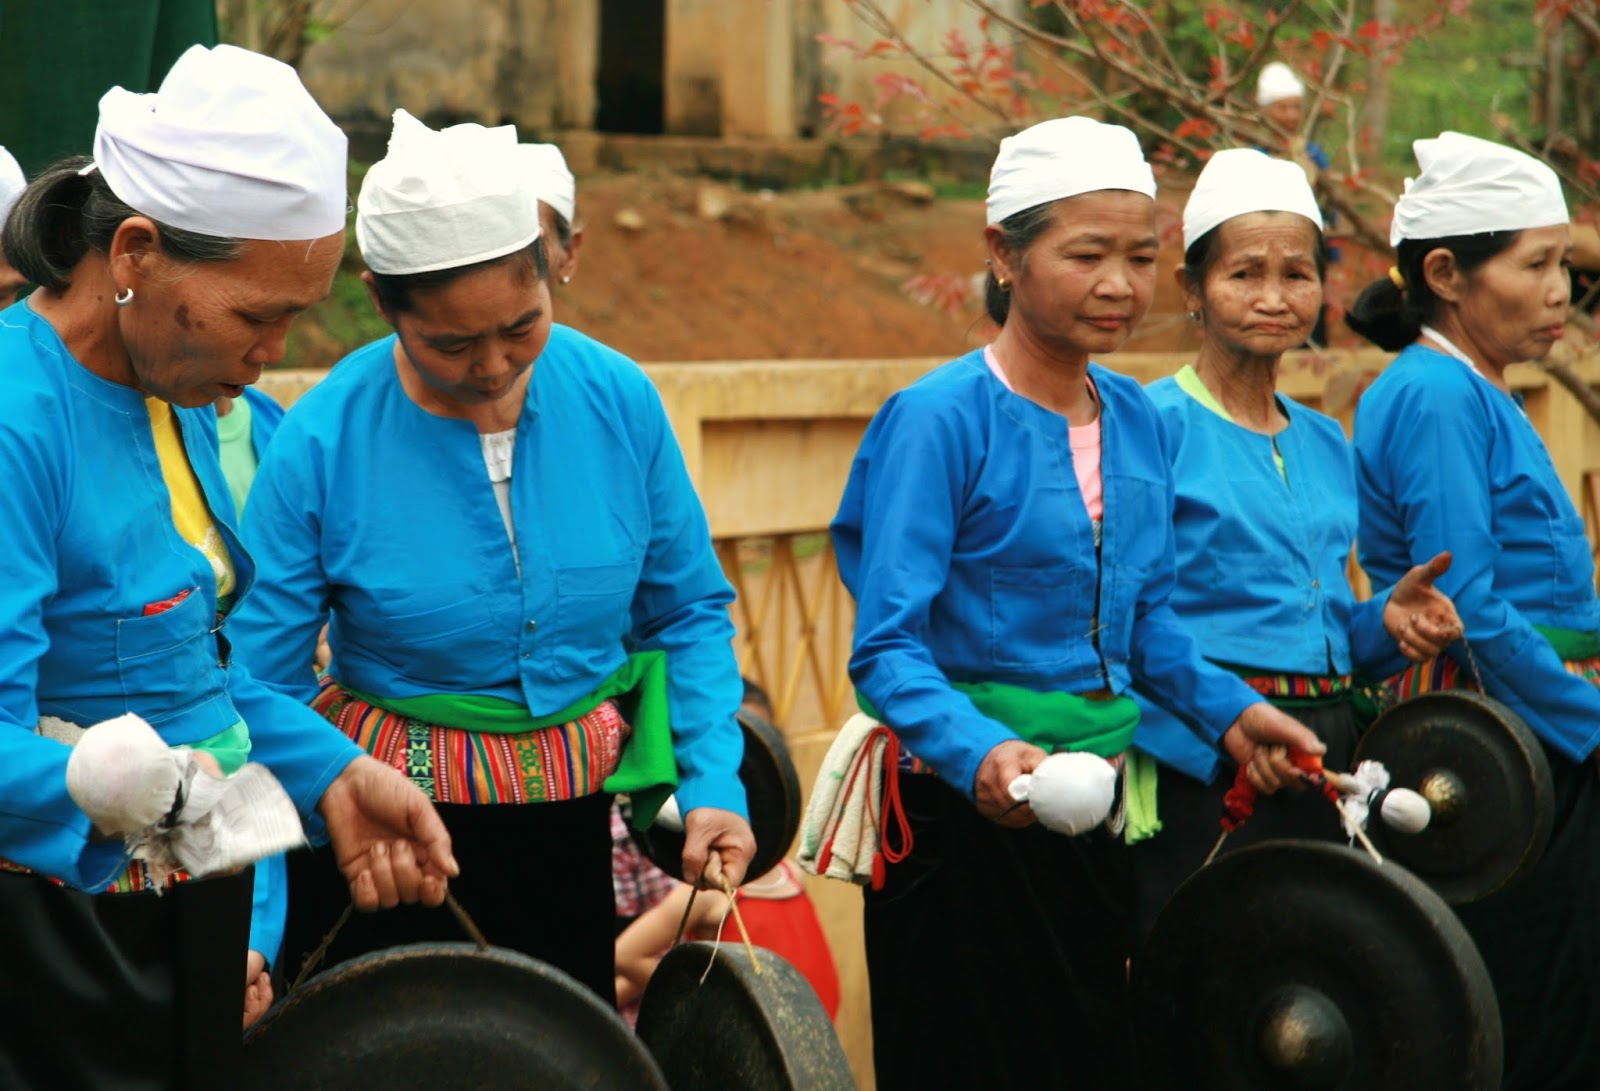 Muong ethnic group